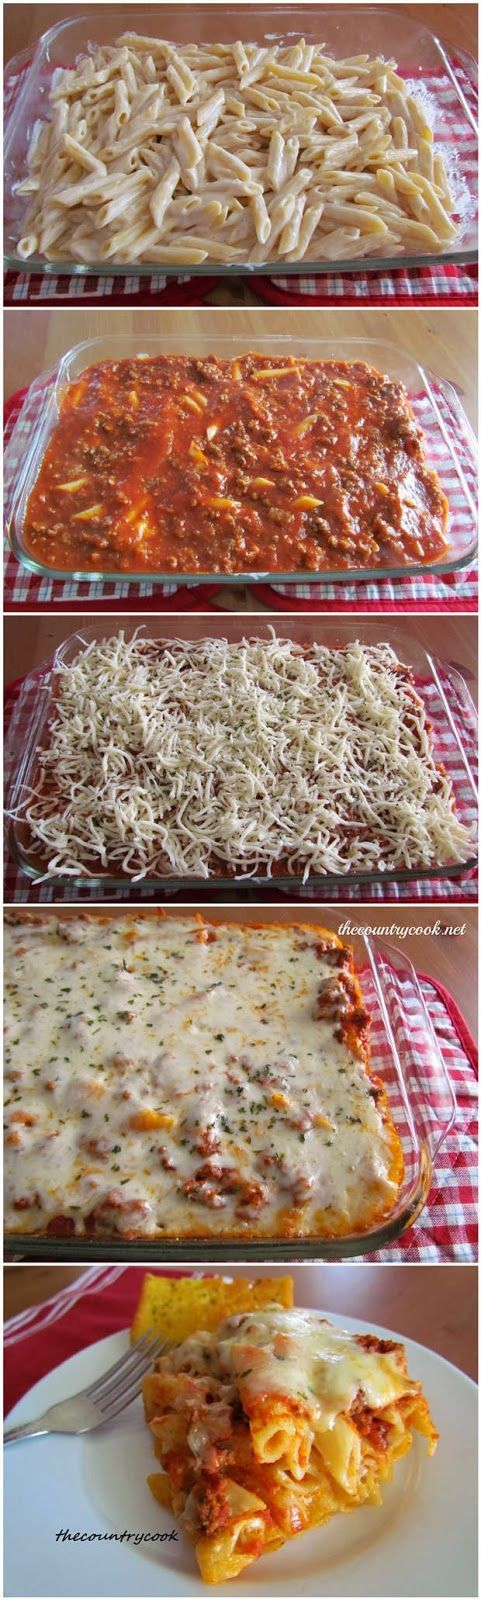 "EASY BAKED ZITI - ""The easiest baked ziti recipe ever!"" - ""My family loved it....especially the kids!"" 